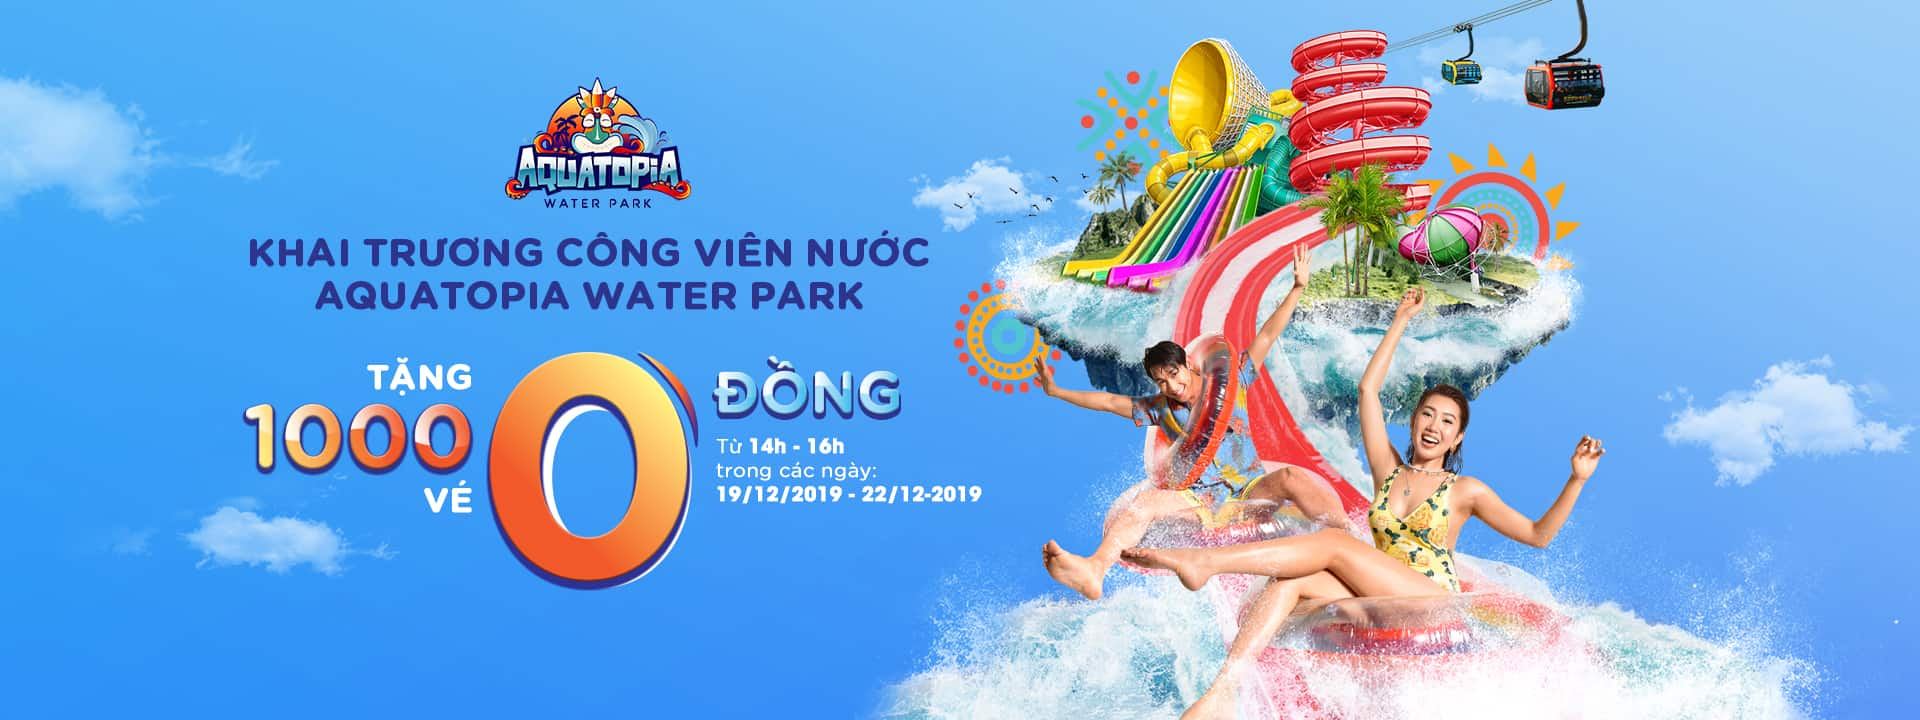 QUICKLY HUNT 1000 FREE TICKETS ON THE OCCASION OF OPENING AQUATOPIA WATER PARK